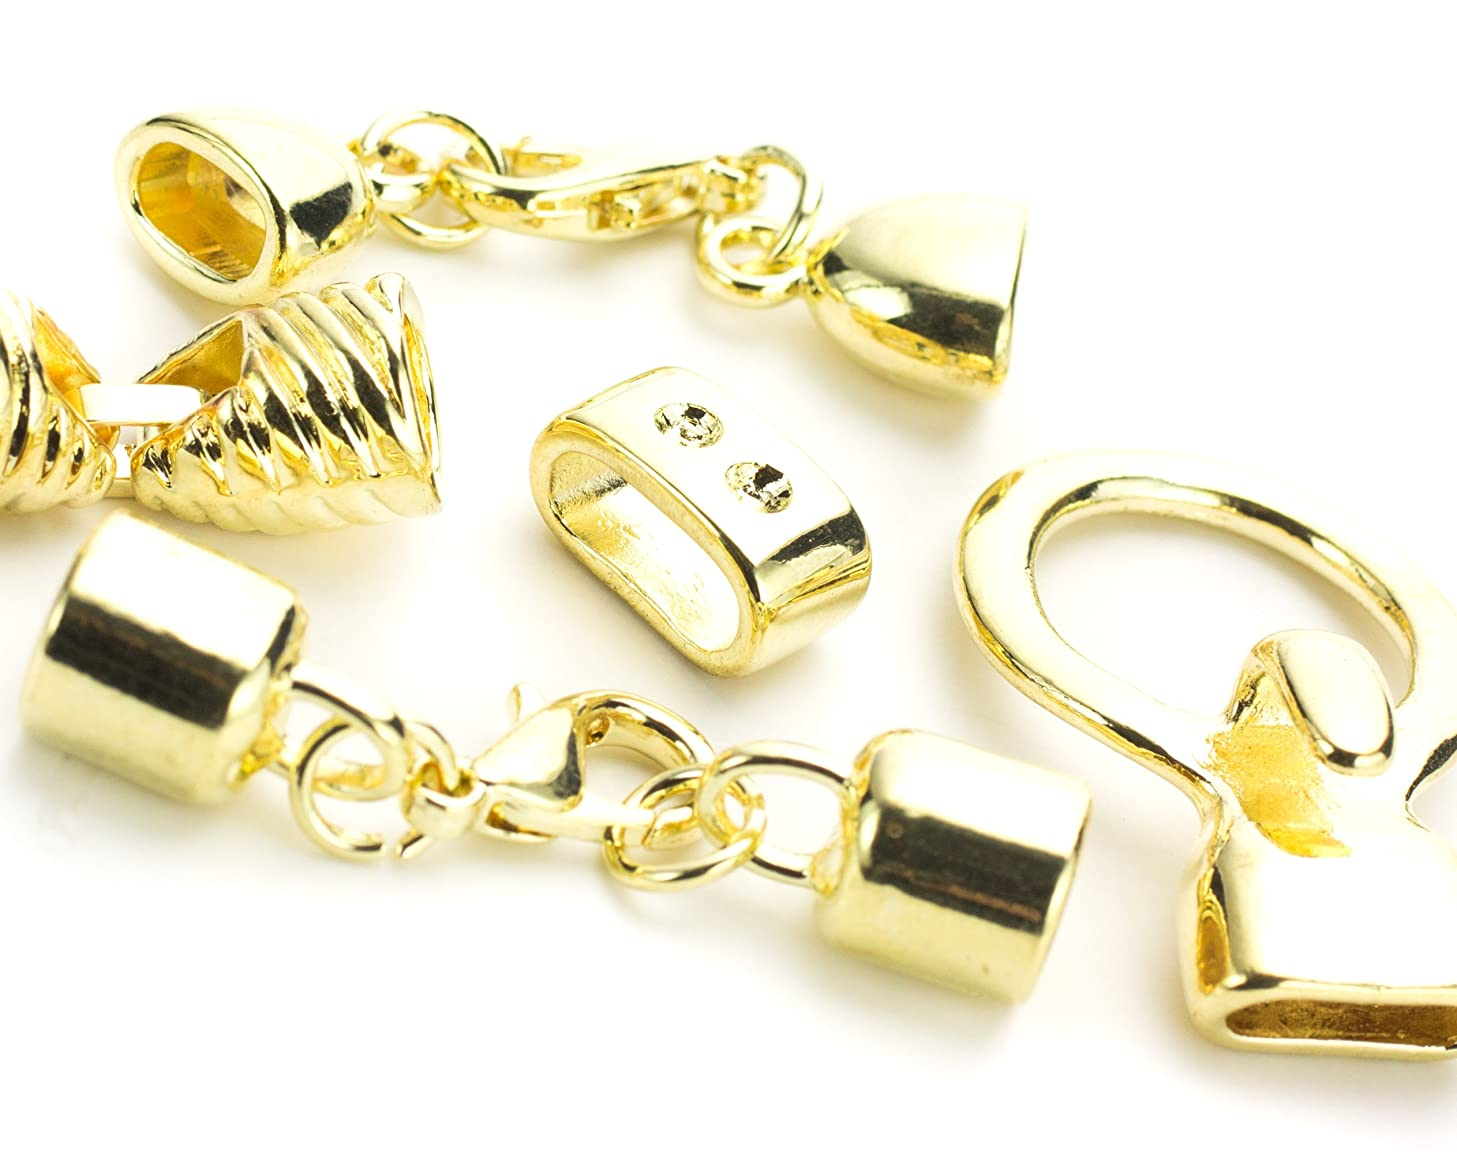 Assorted Gold Metal Cord Ends - 4 Sets